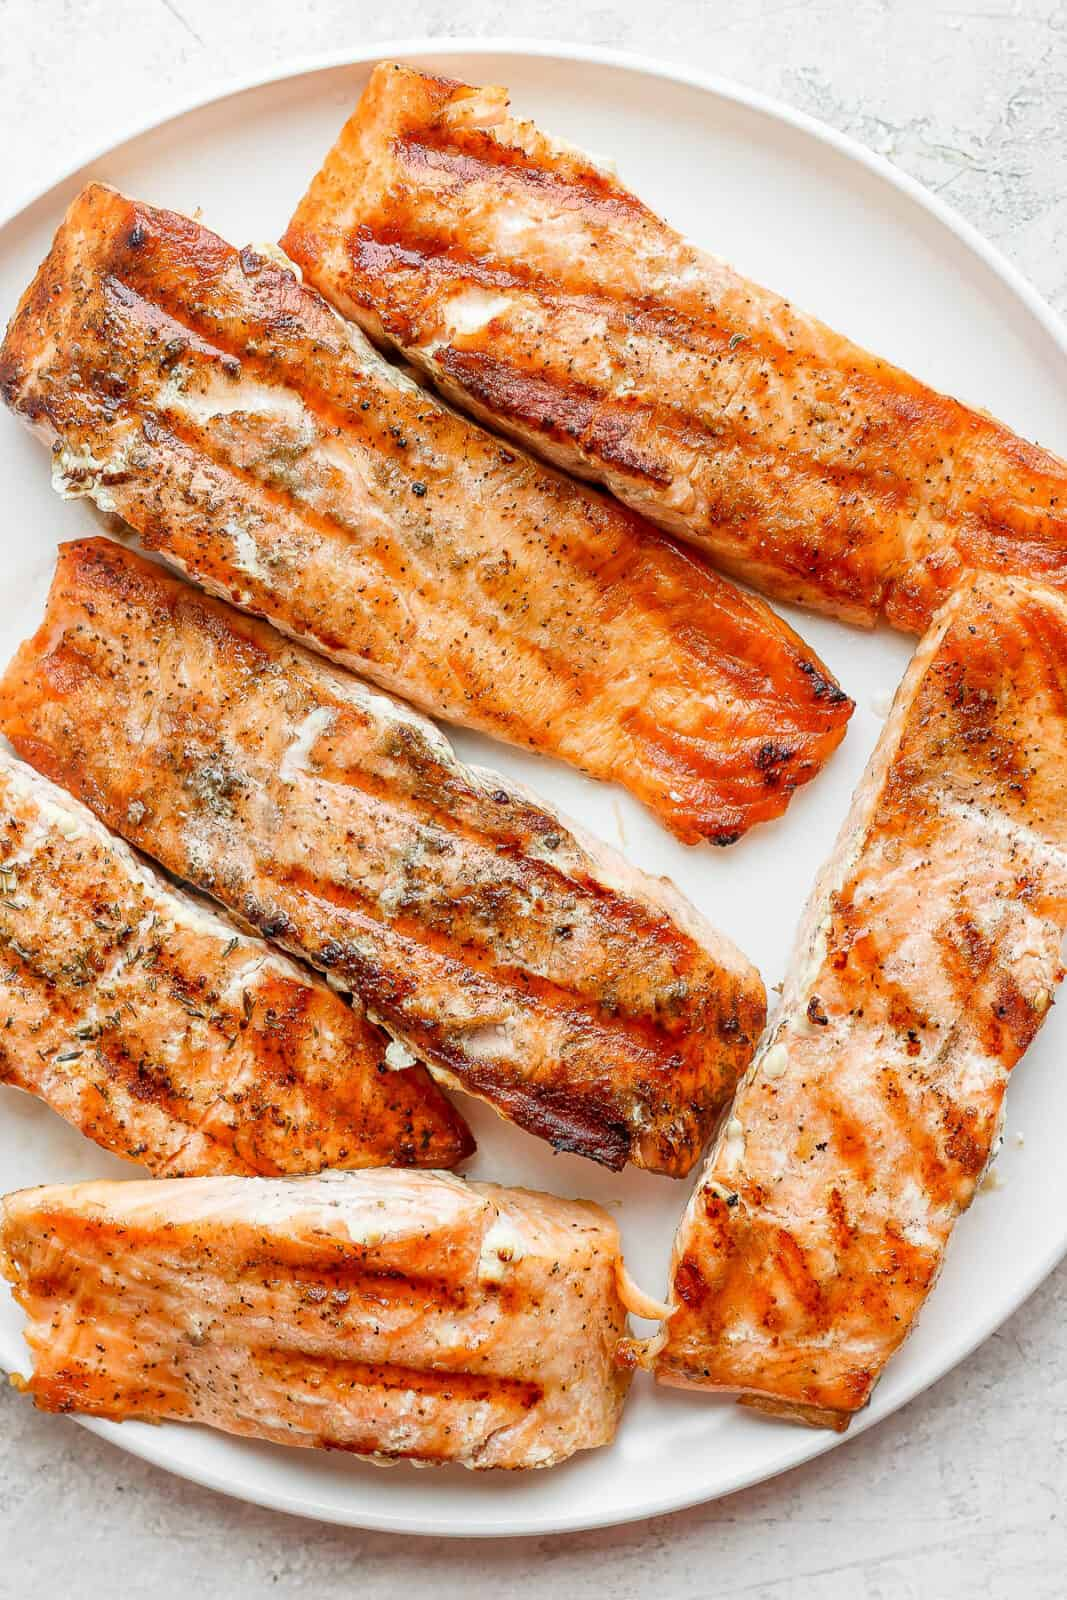 A large plate filled with grilled salmon fillets.